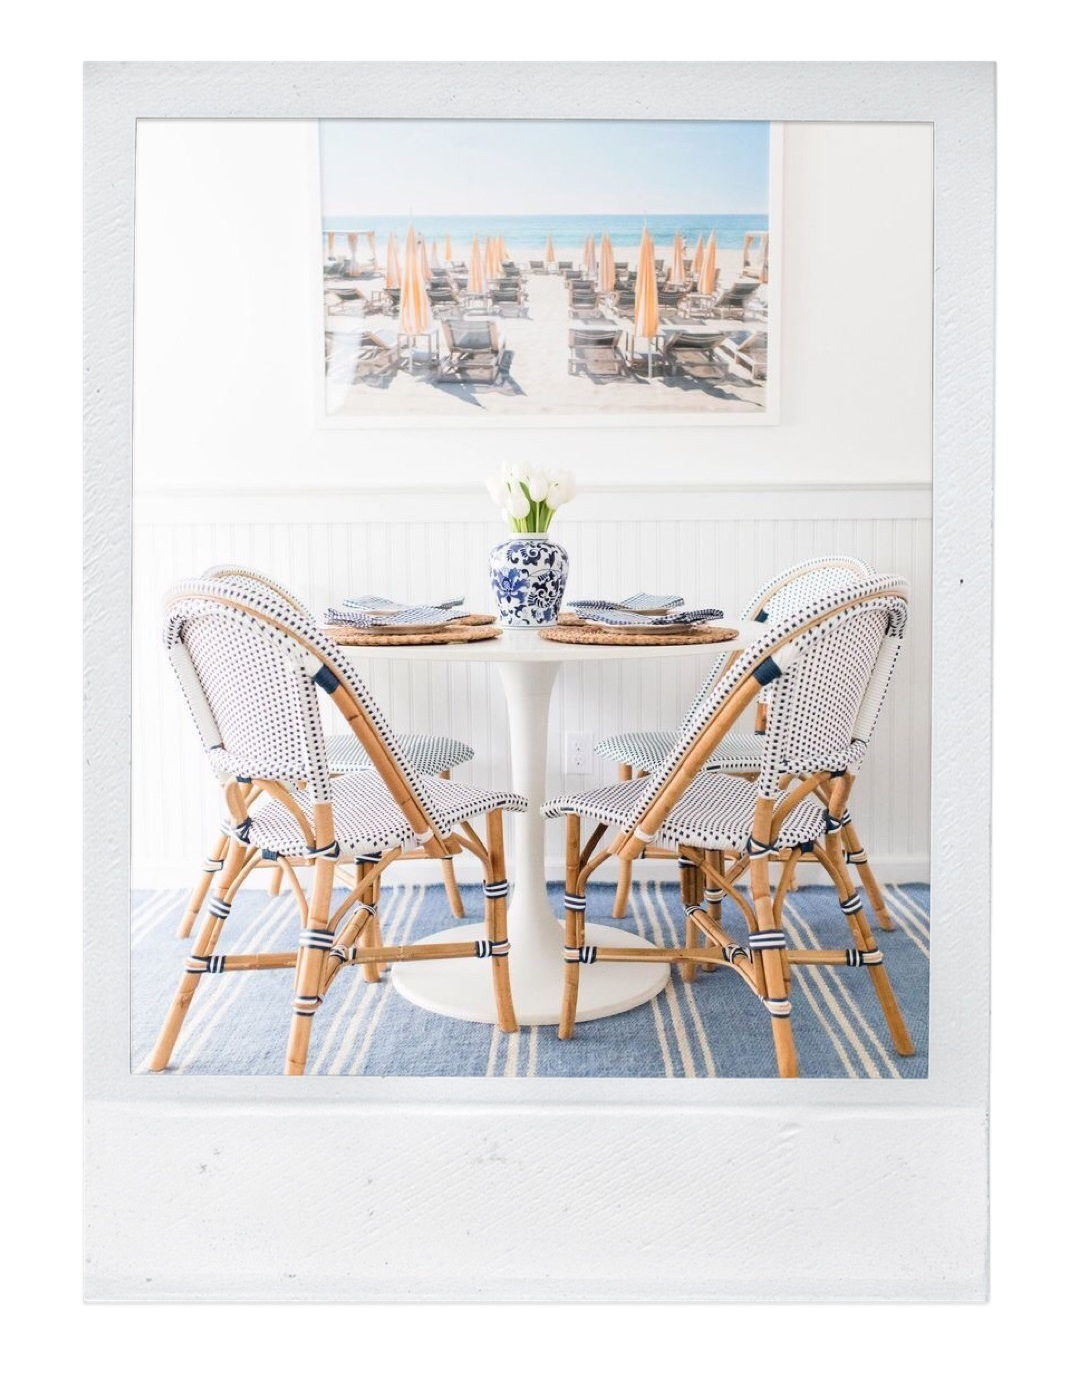 bistro chairs in dining nook